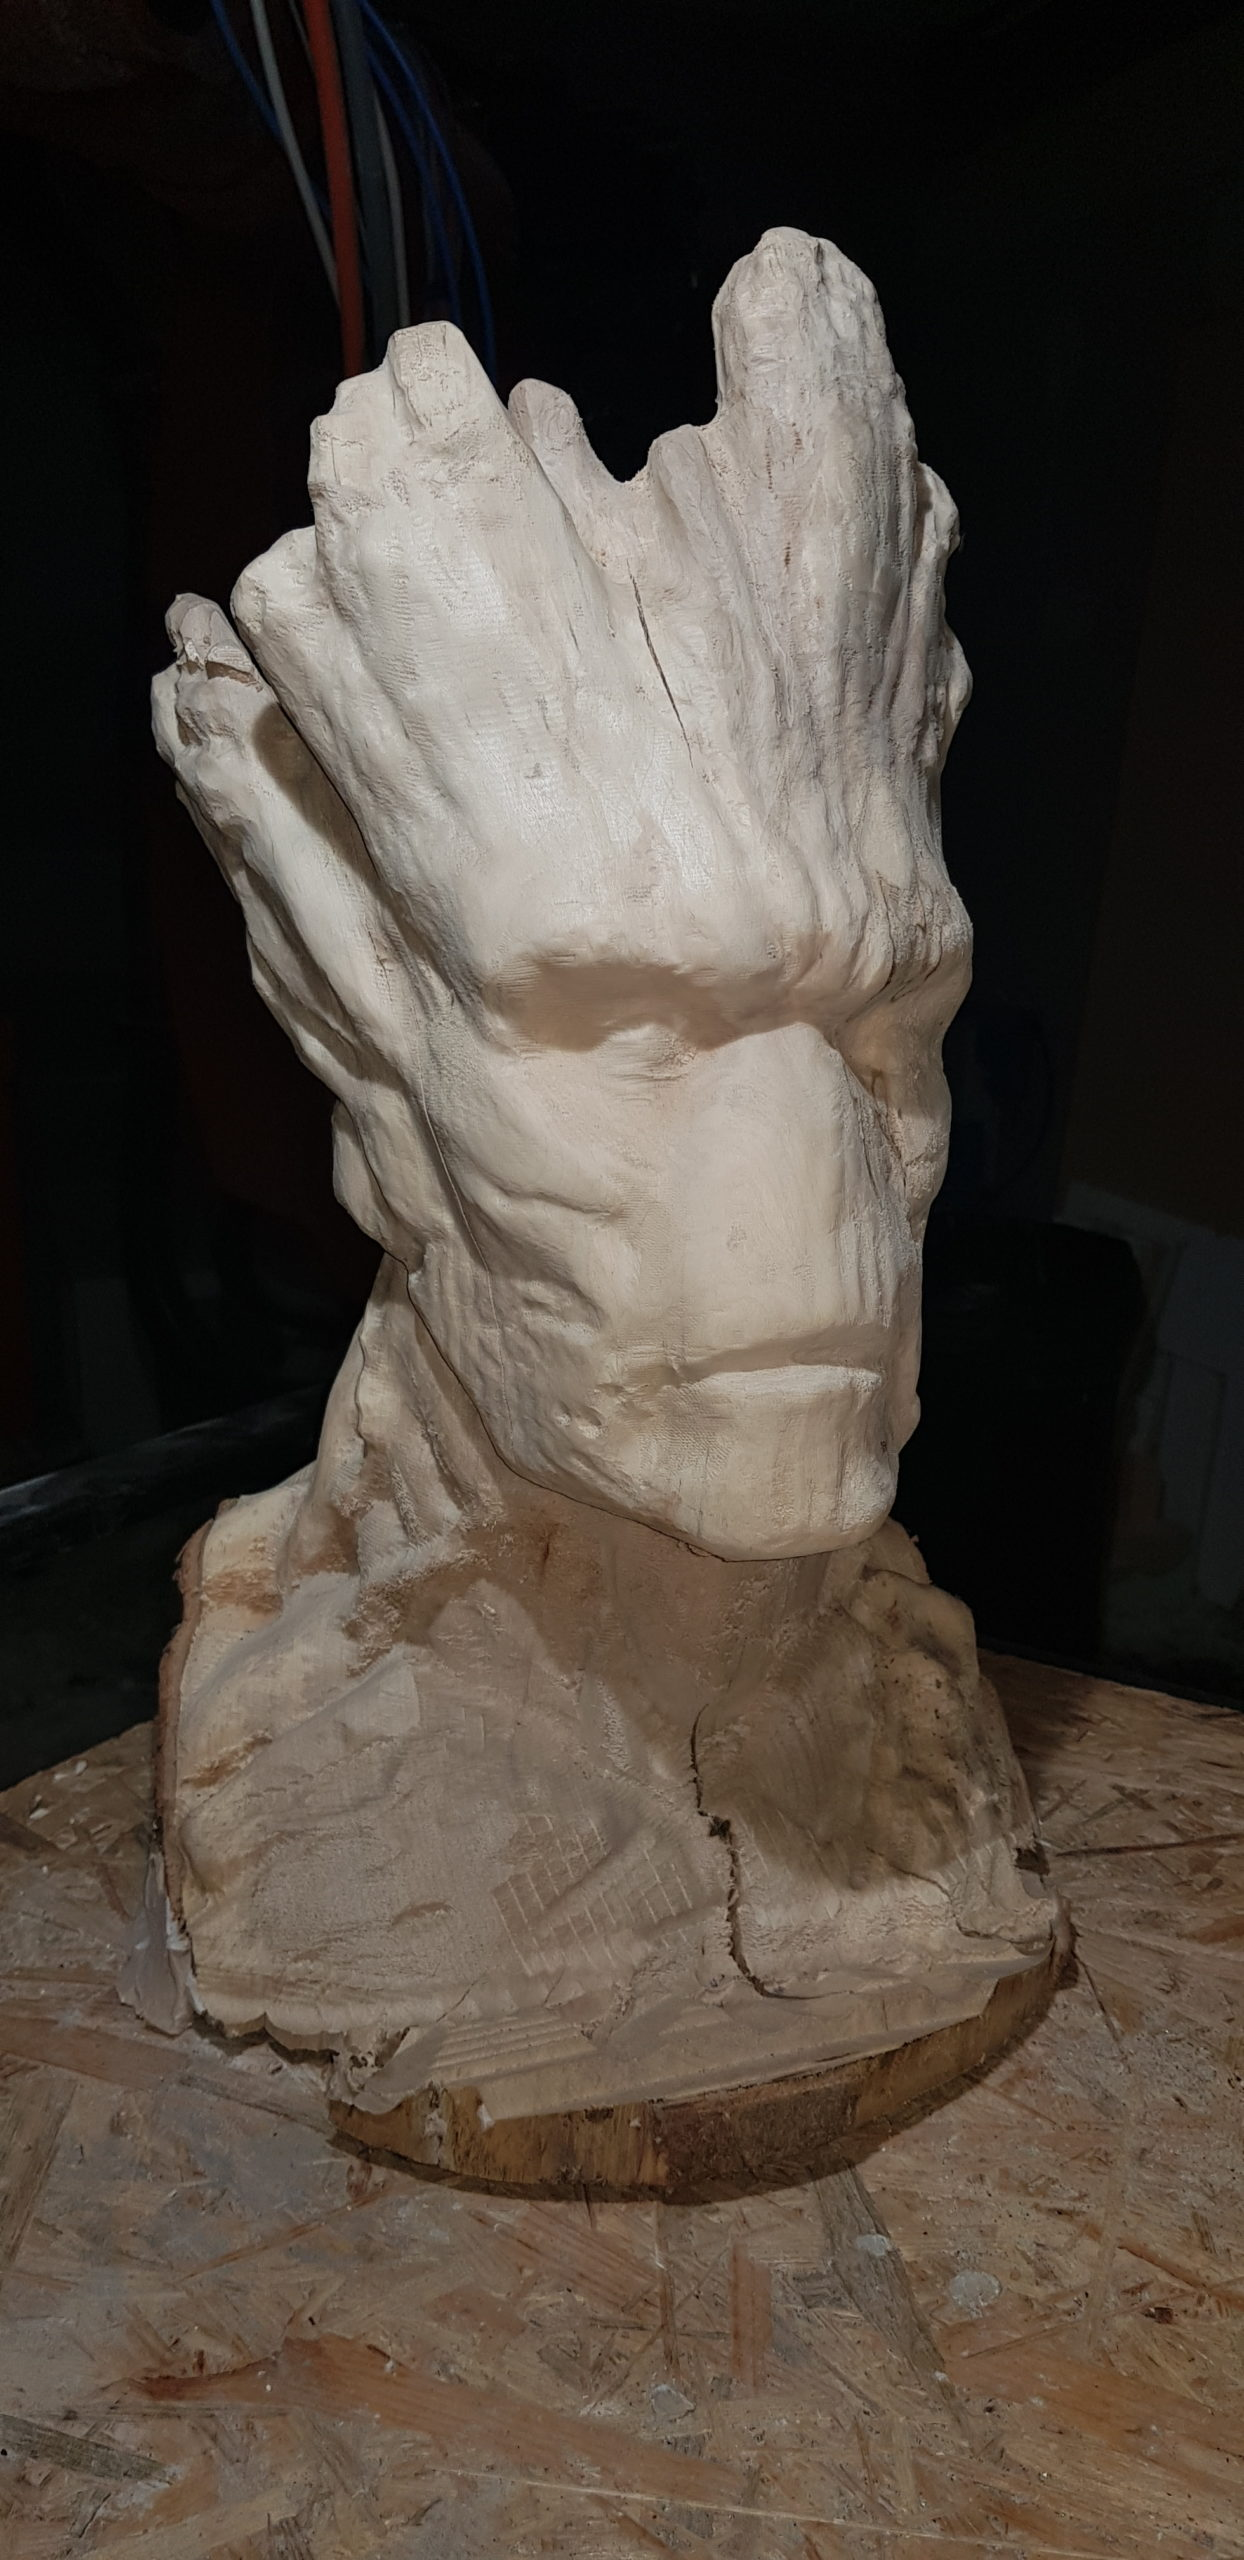 CNC Machined wooden sculpture of Groot from Guardians of the Galaxy